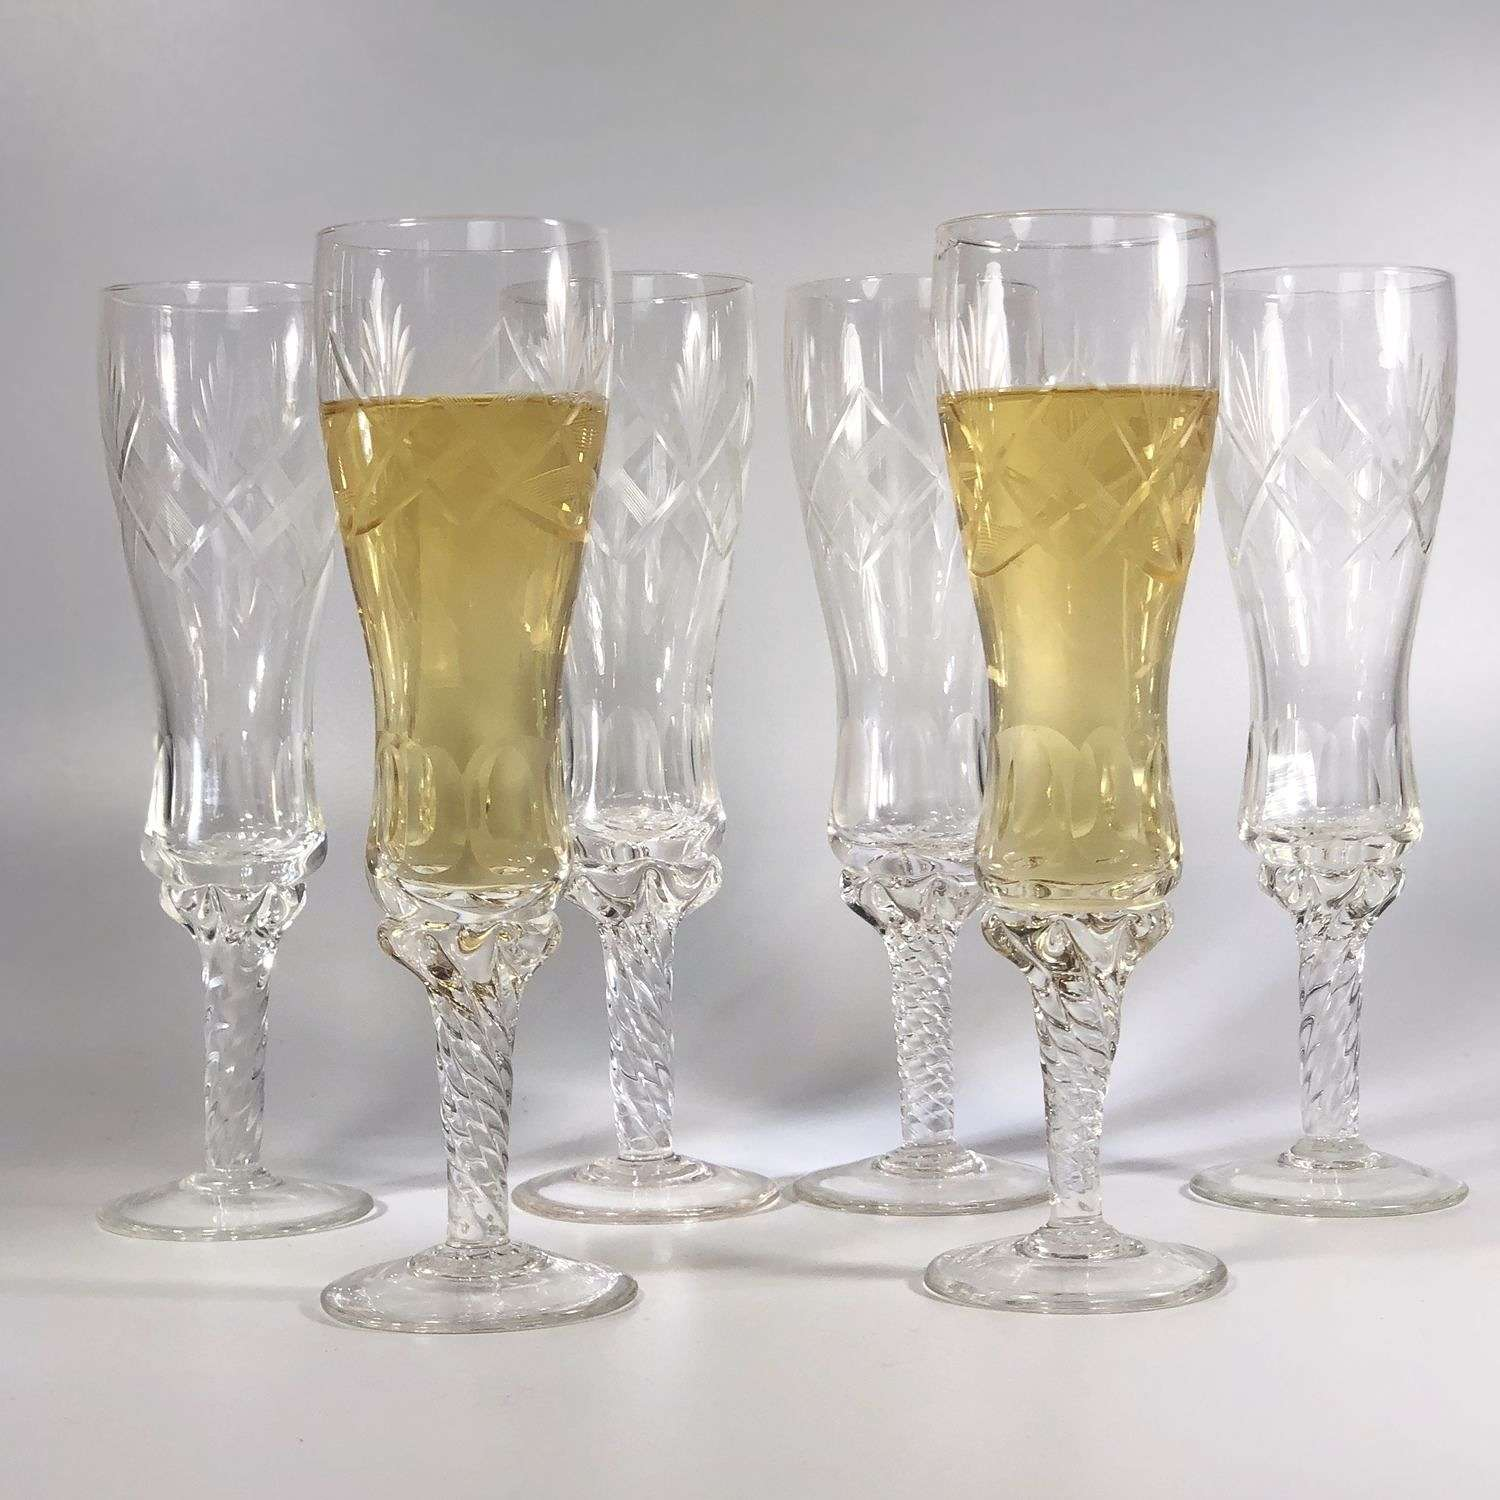 Large French champagne flutes with twisted stems